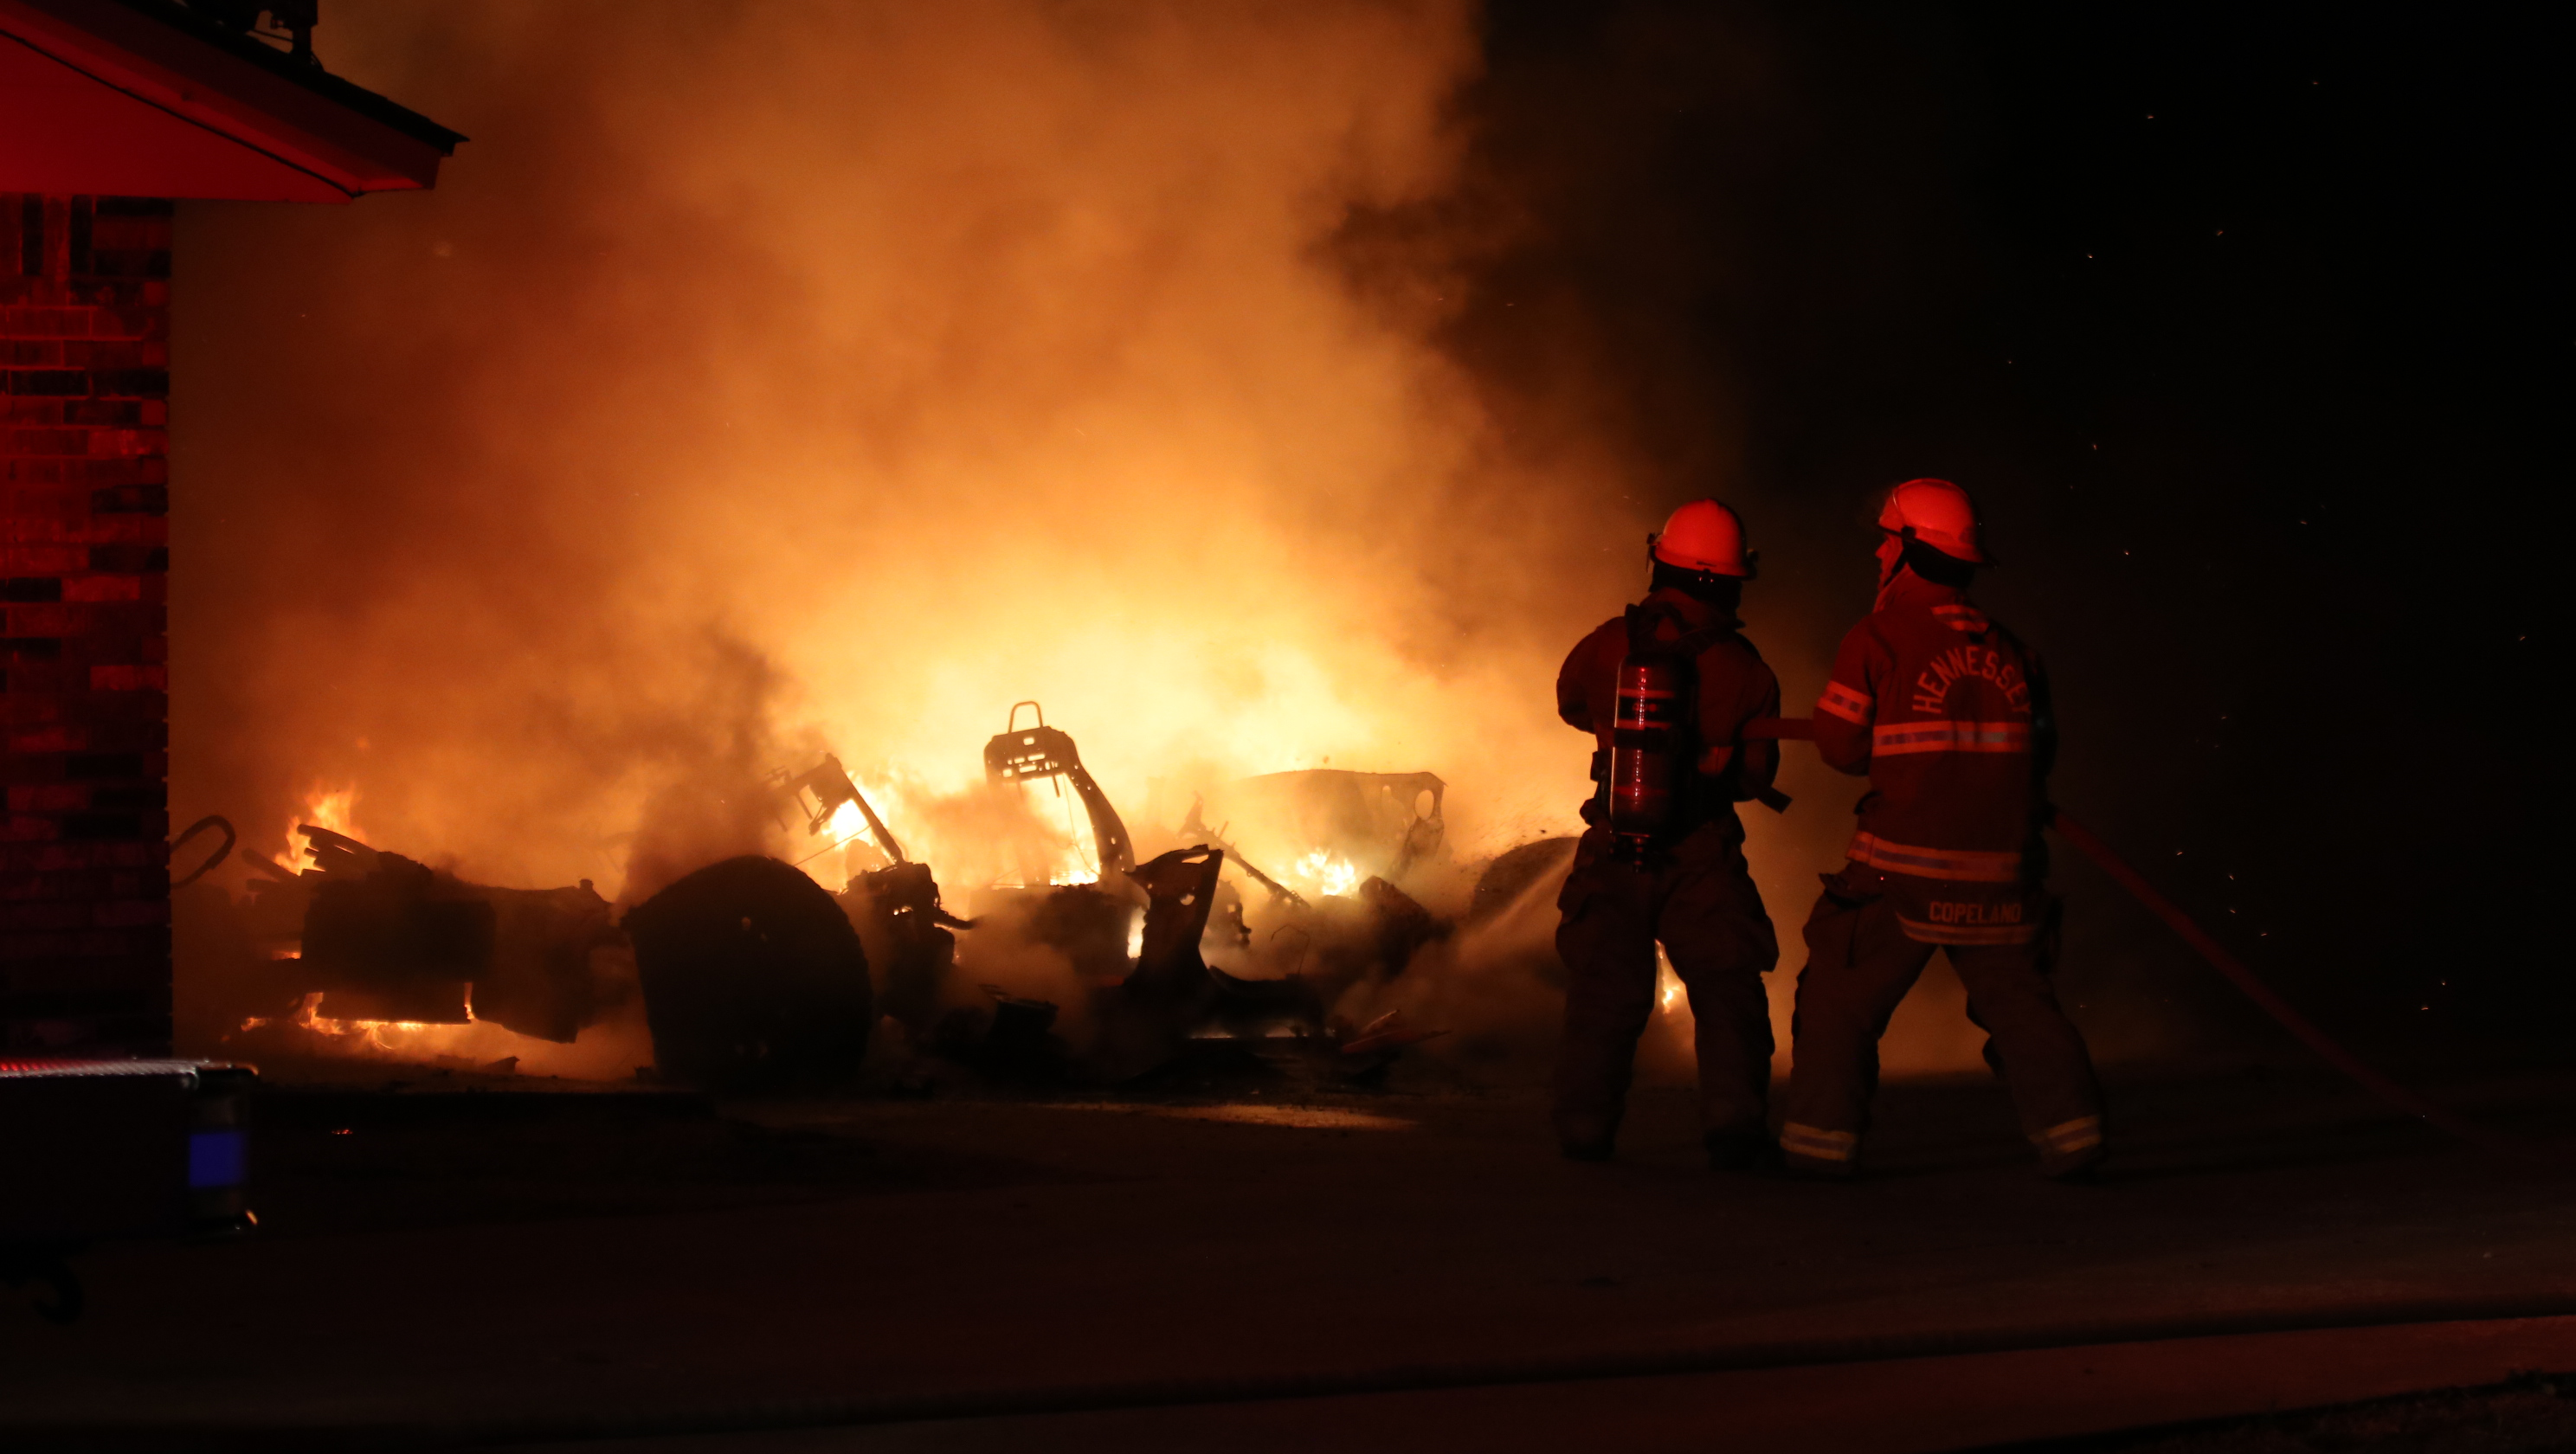 OVERNIGHT HOUSE FIRE DISPLACES FAMILY